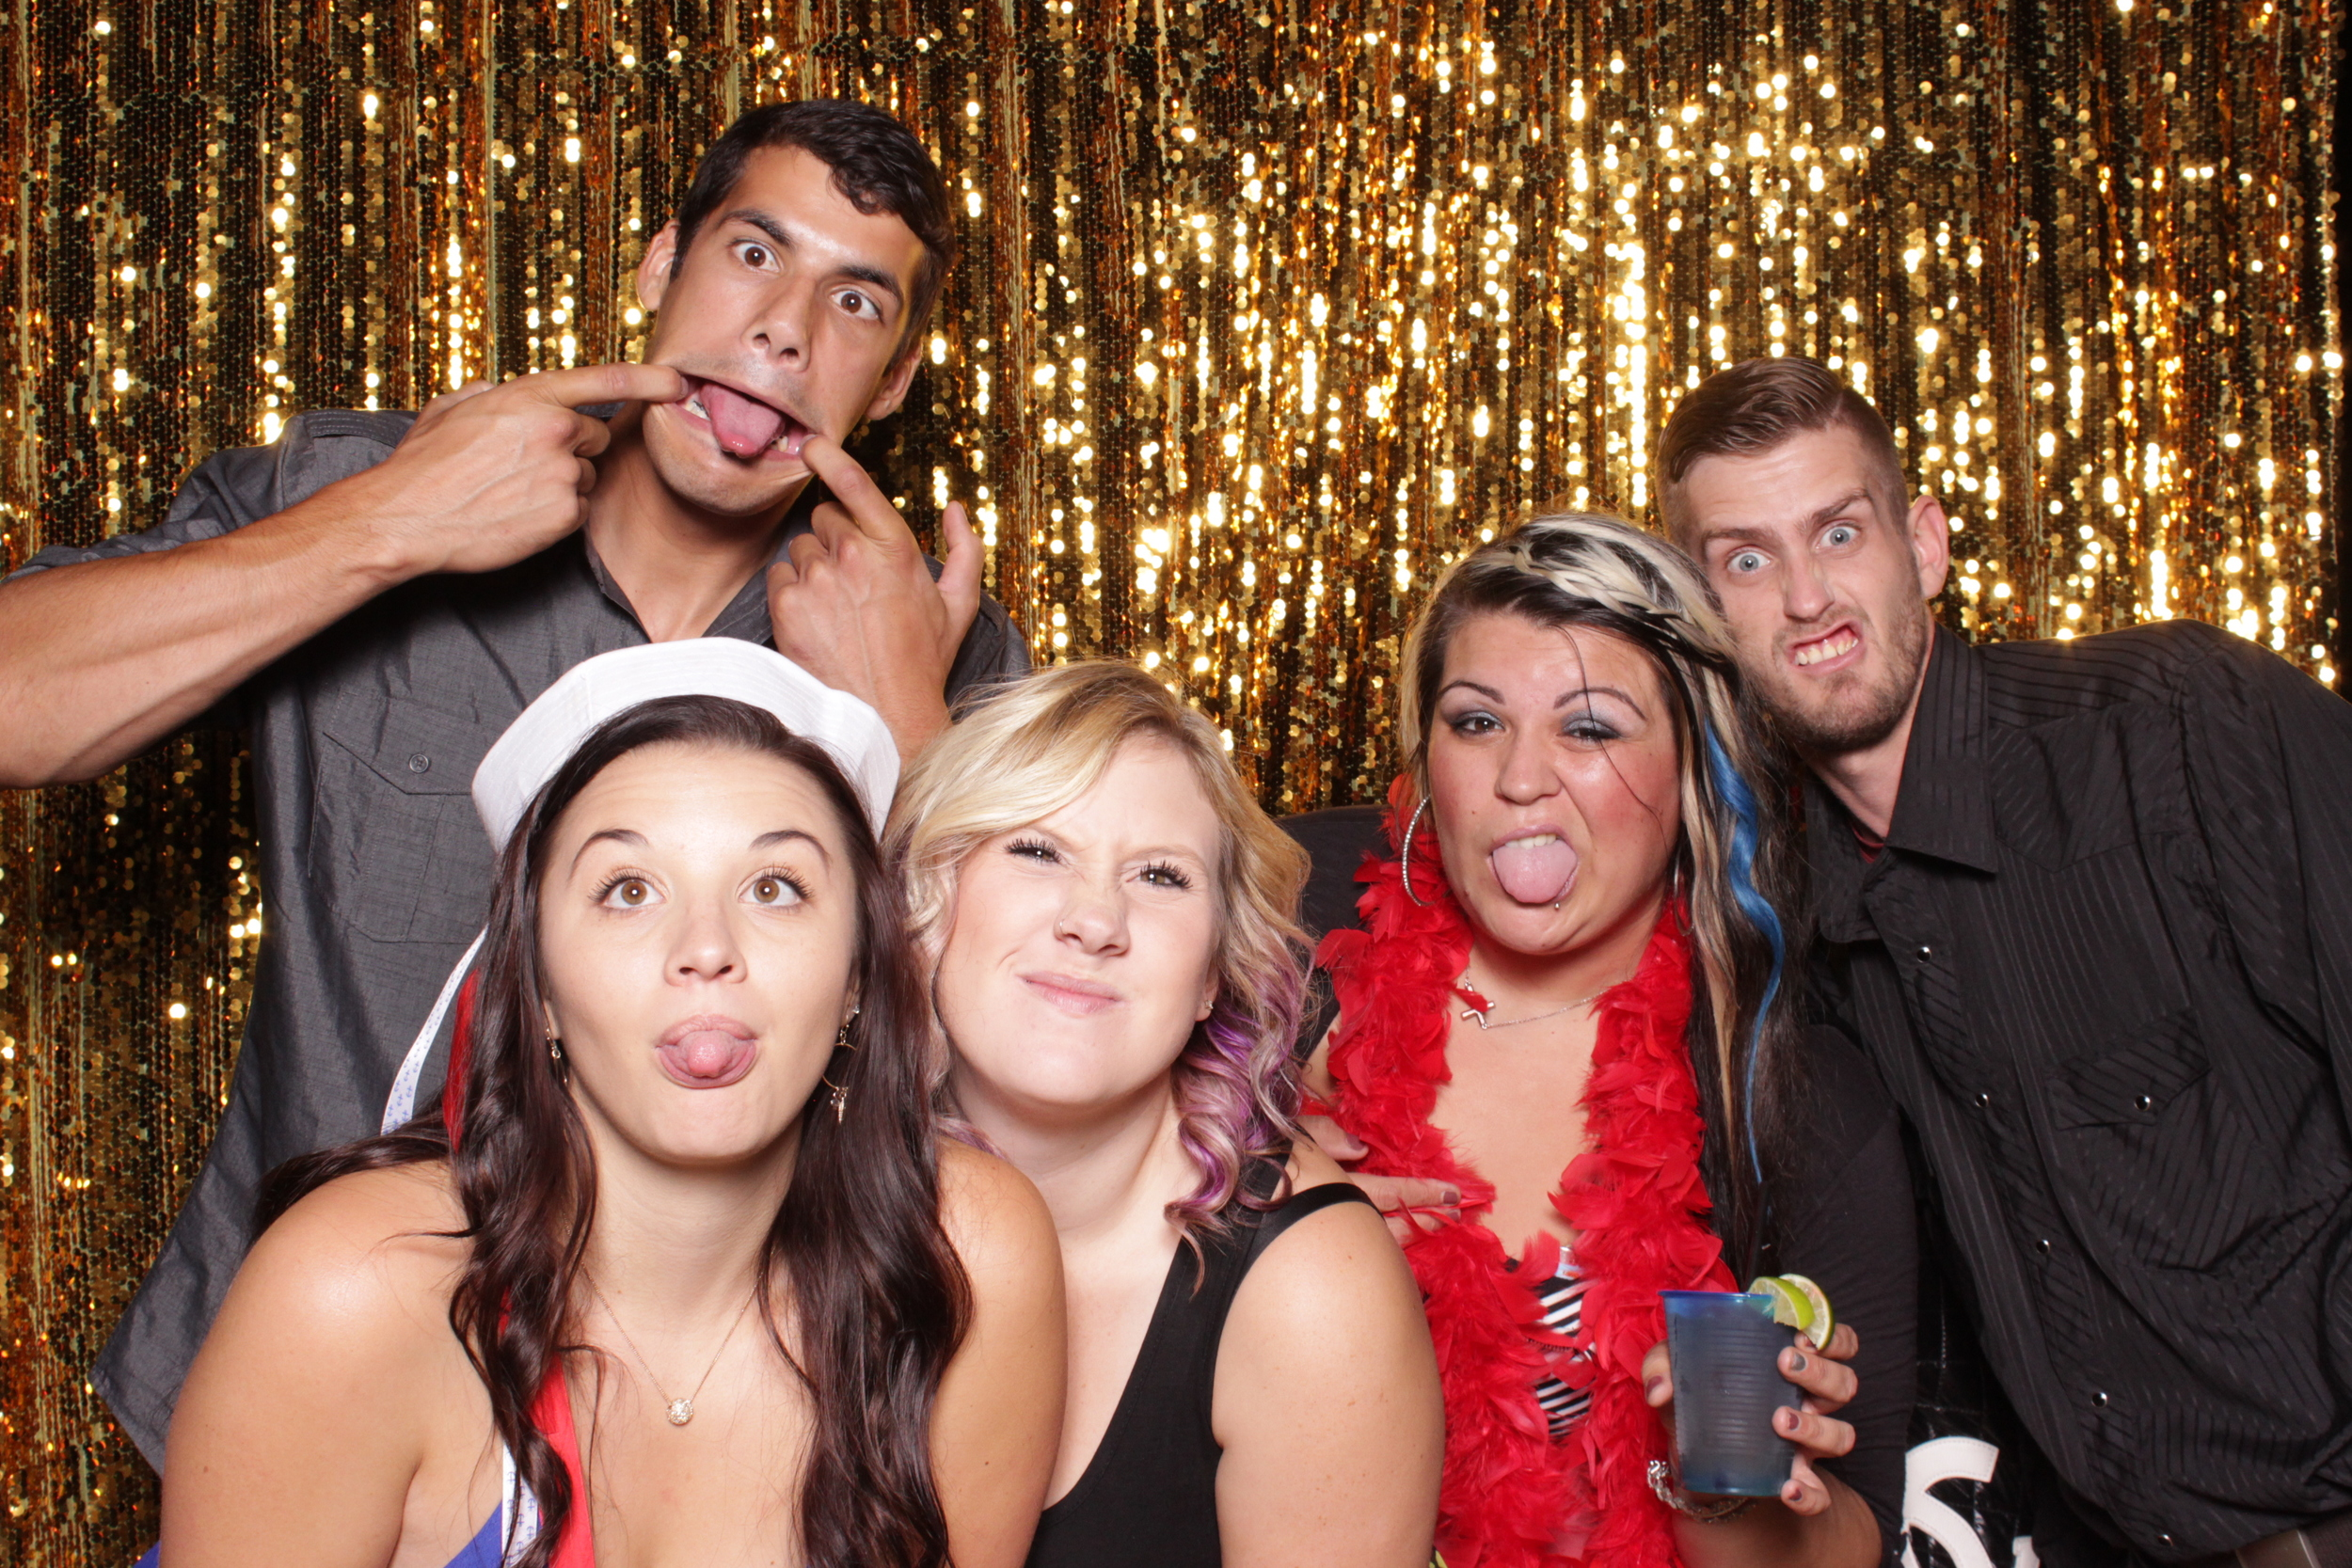 a-durham-photo-boothIMG_0249.JPG